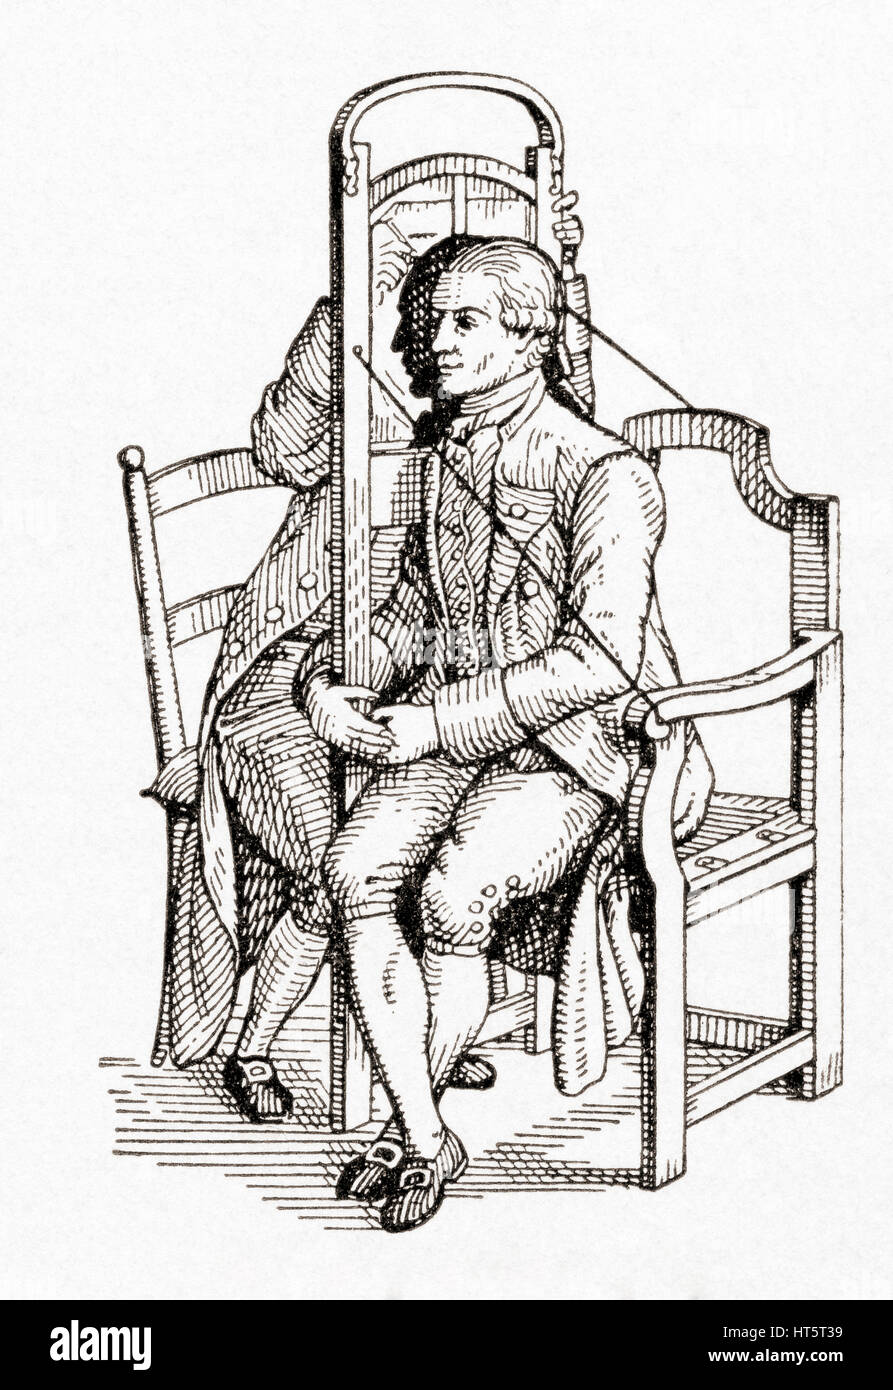 A silhouette chair invented to make it possible to copy a profile in a single sitting.  Cutting portraits, generally - Stock Image